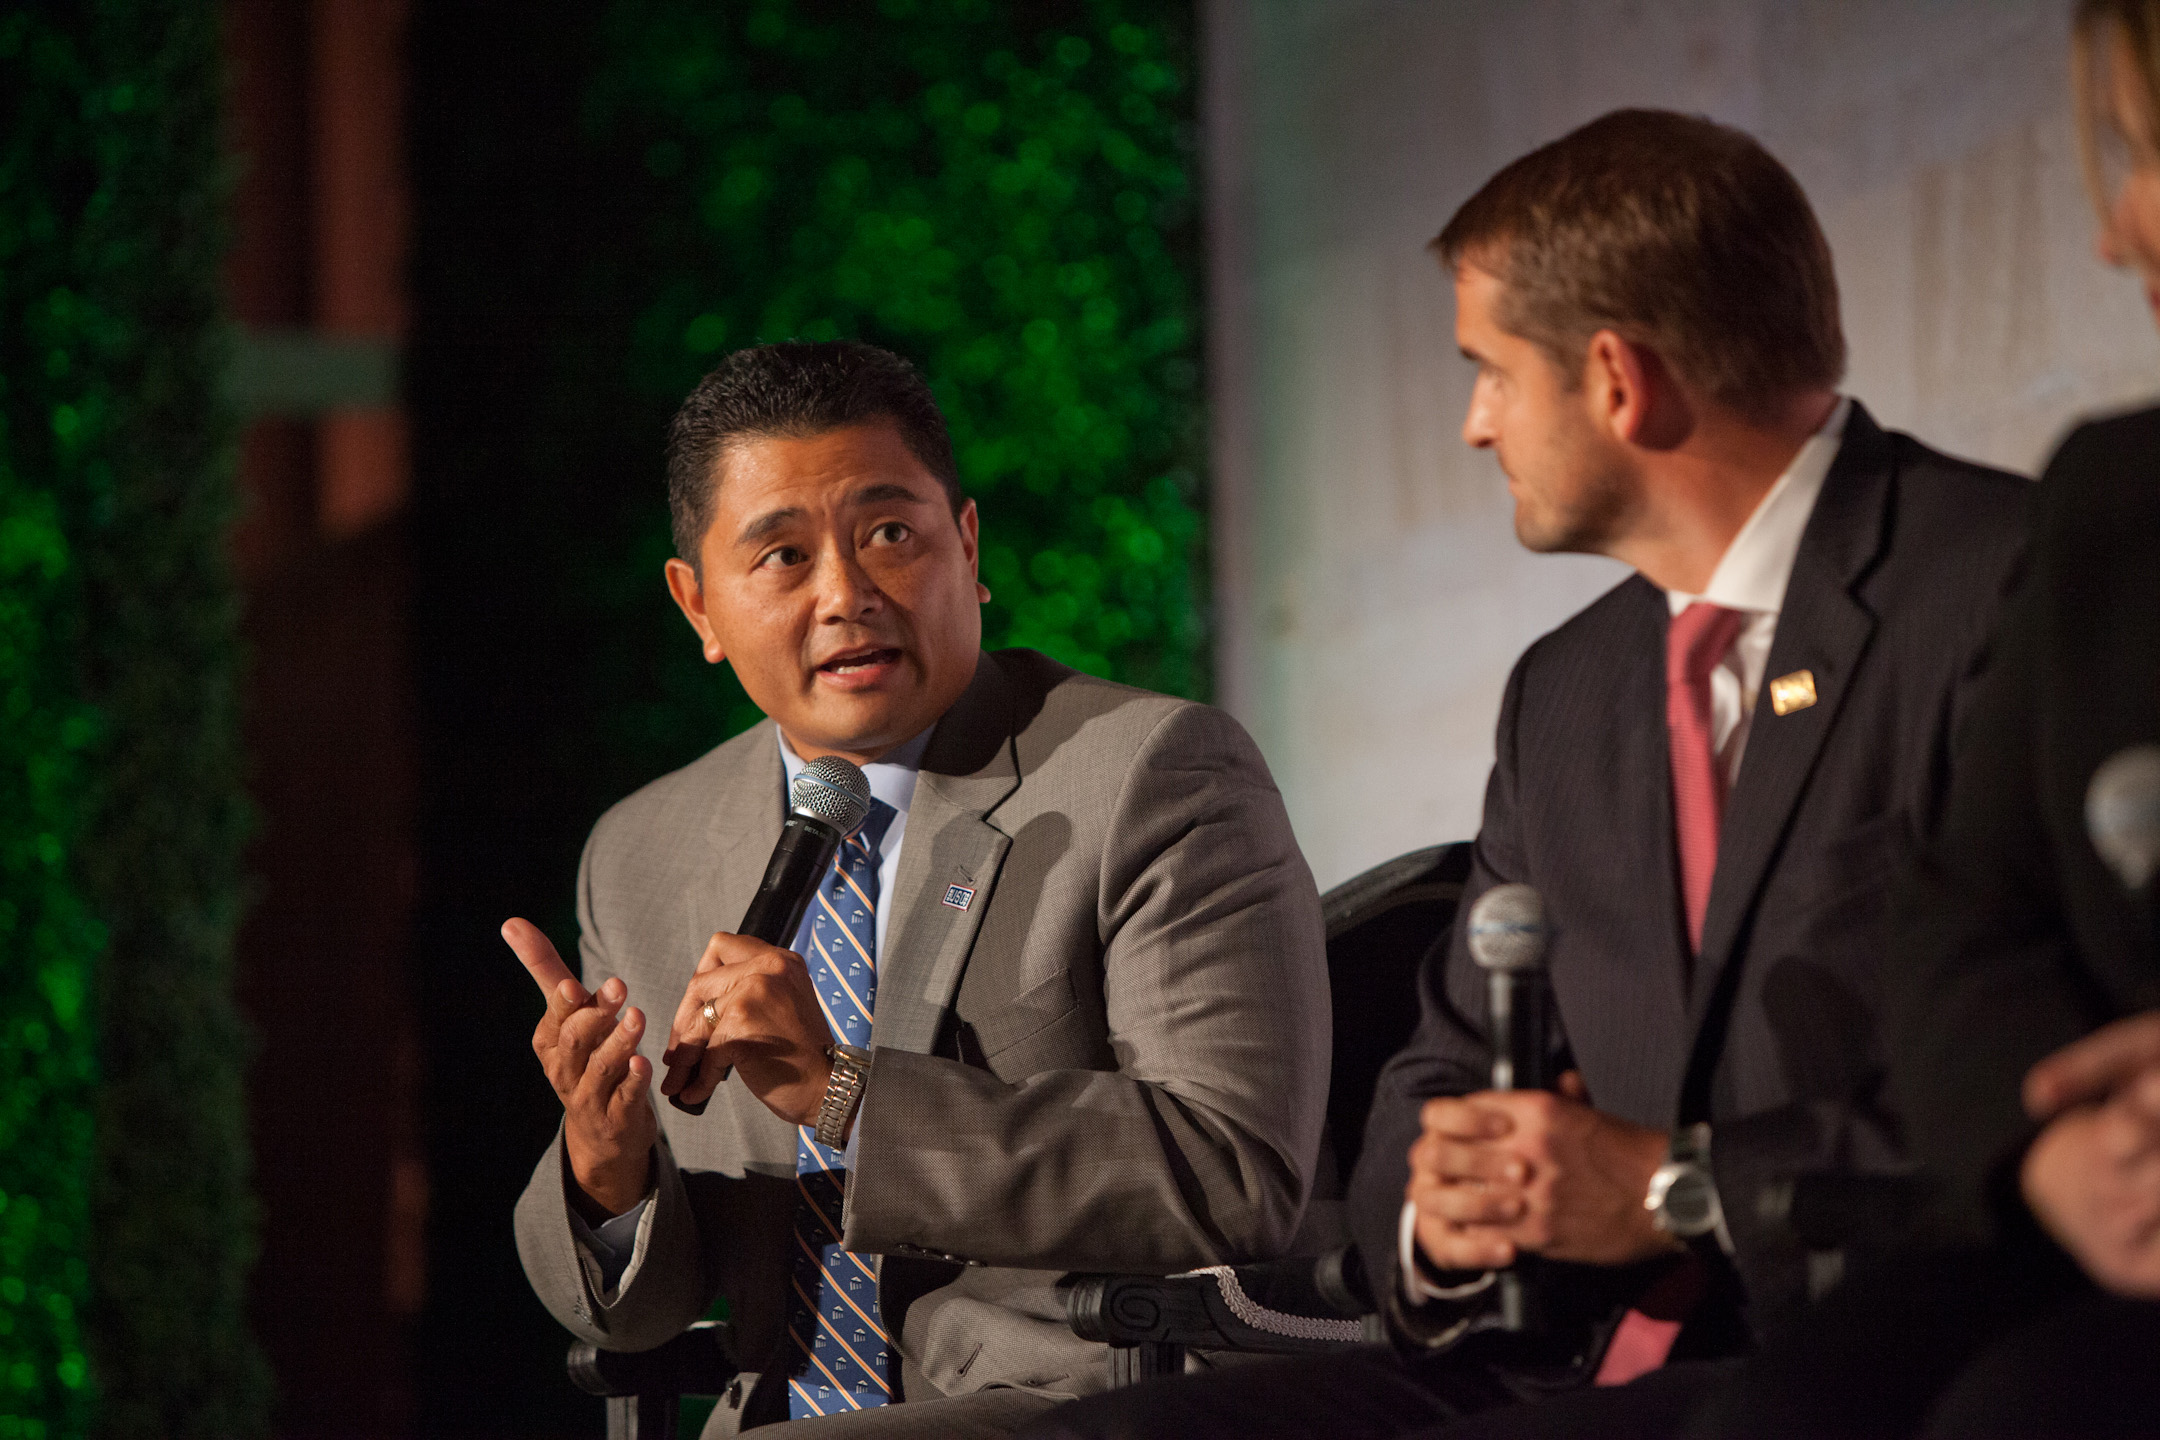 USO Senior Vice President of Operations Alan Reyes, left, discusses military families at The Daily Beast's Hero Summit in Washington on Oct. 10. (Photo courtesy of The Daily Beast)